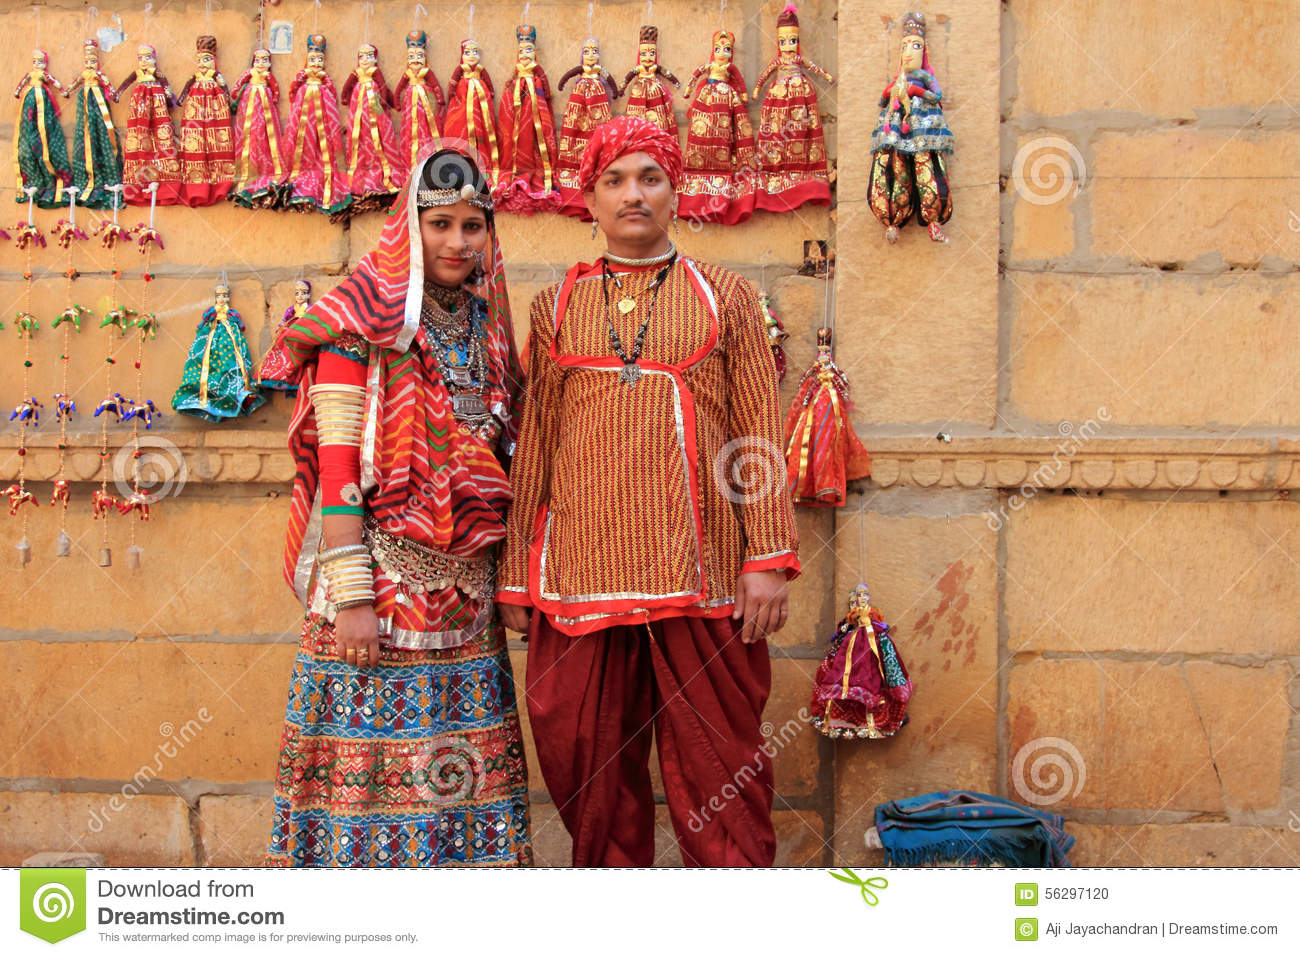 Traditional dress of rajasthan clipart svg transparent library Traditional dress of rajasthan clipart - ClipartFest svg transparent library